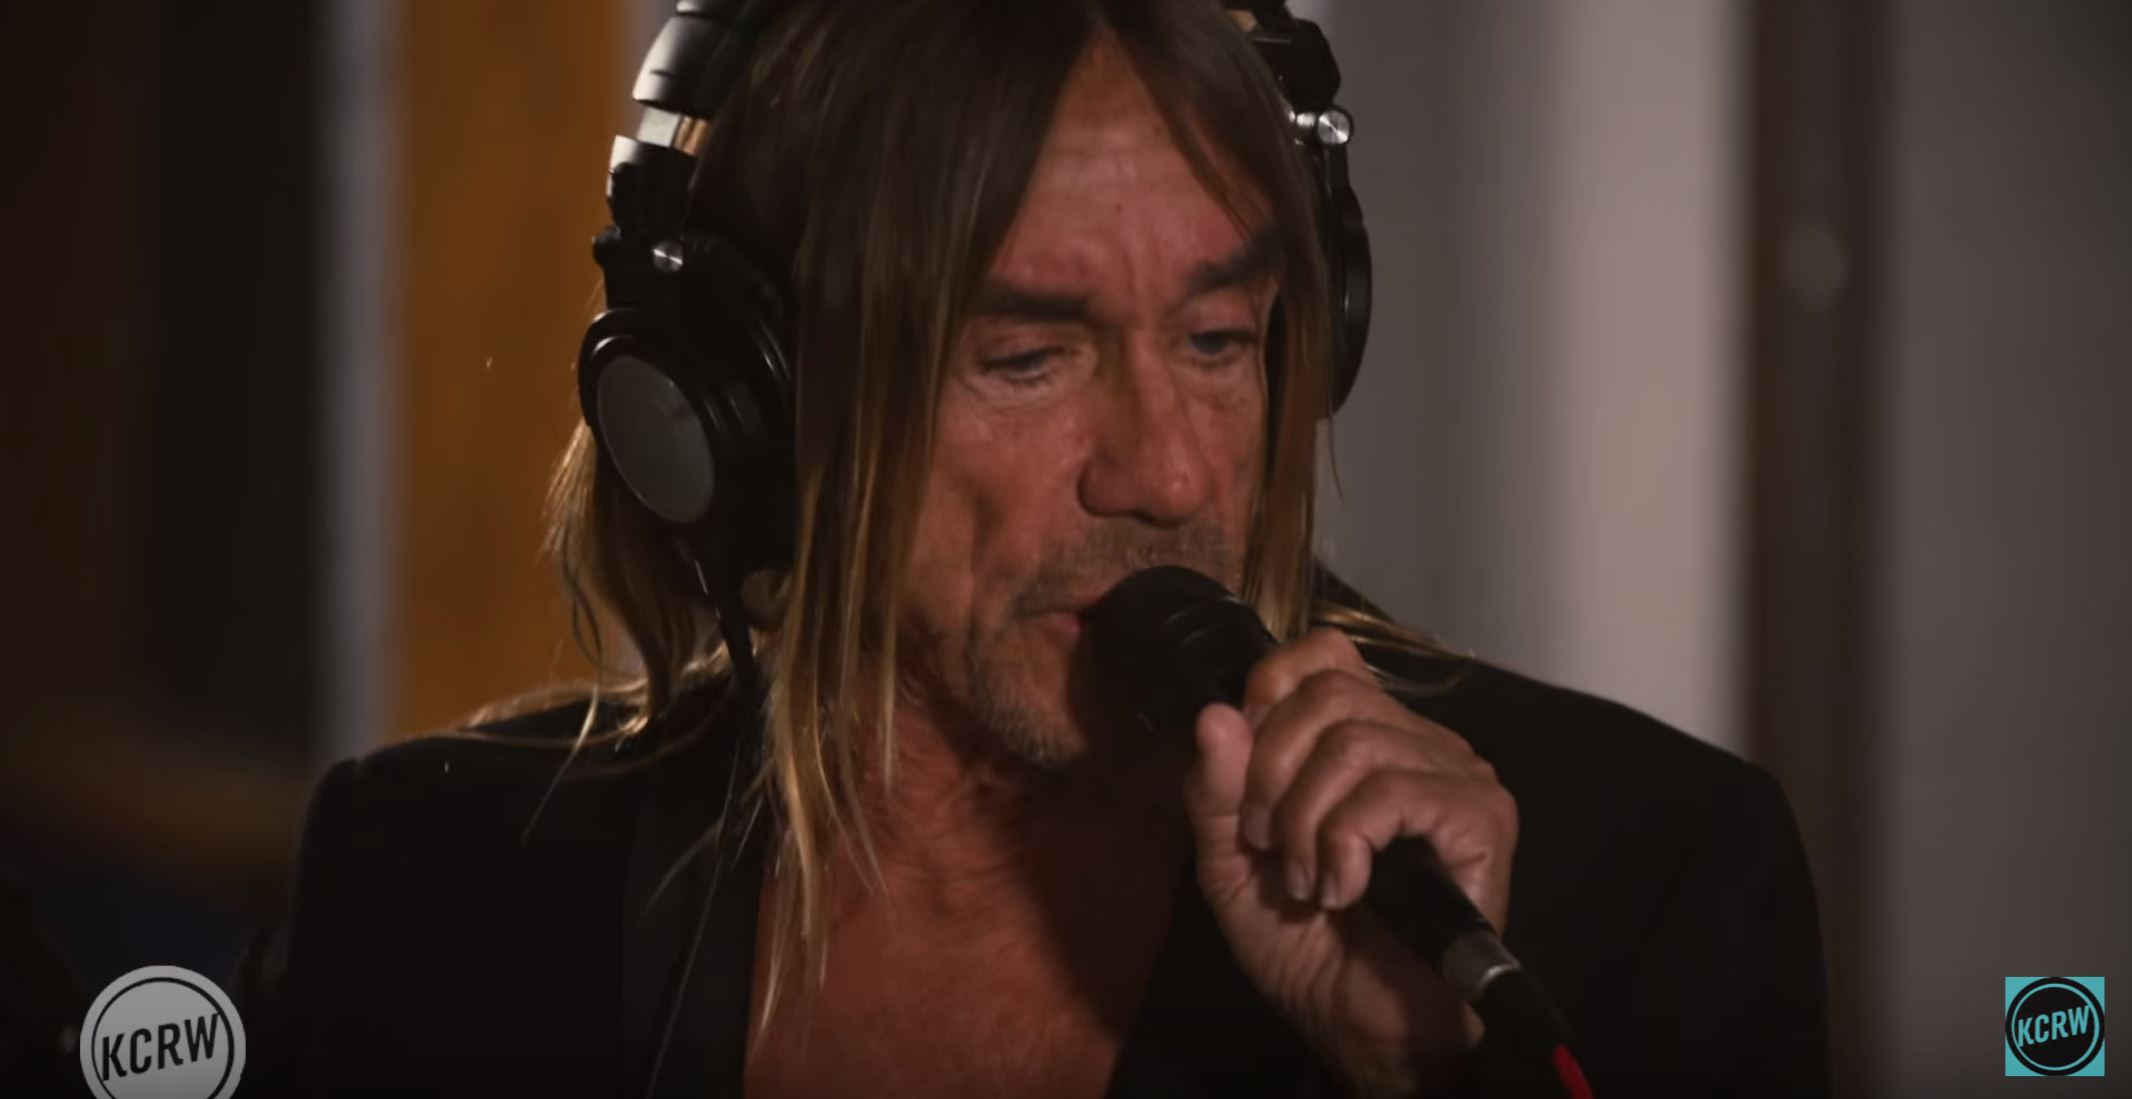 See Iggy Pop´s Live Performance on KCRW